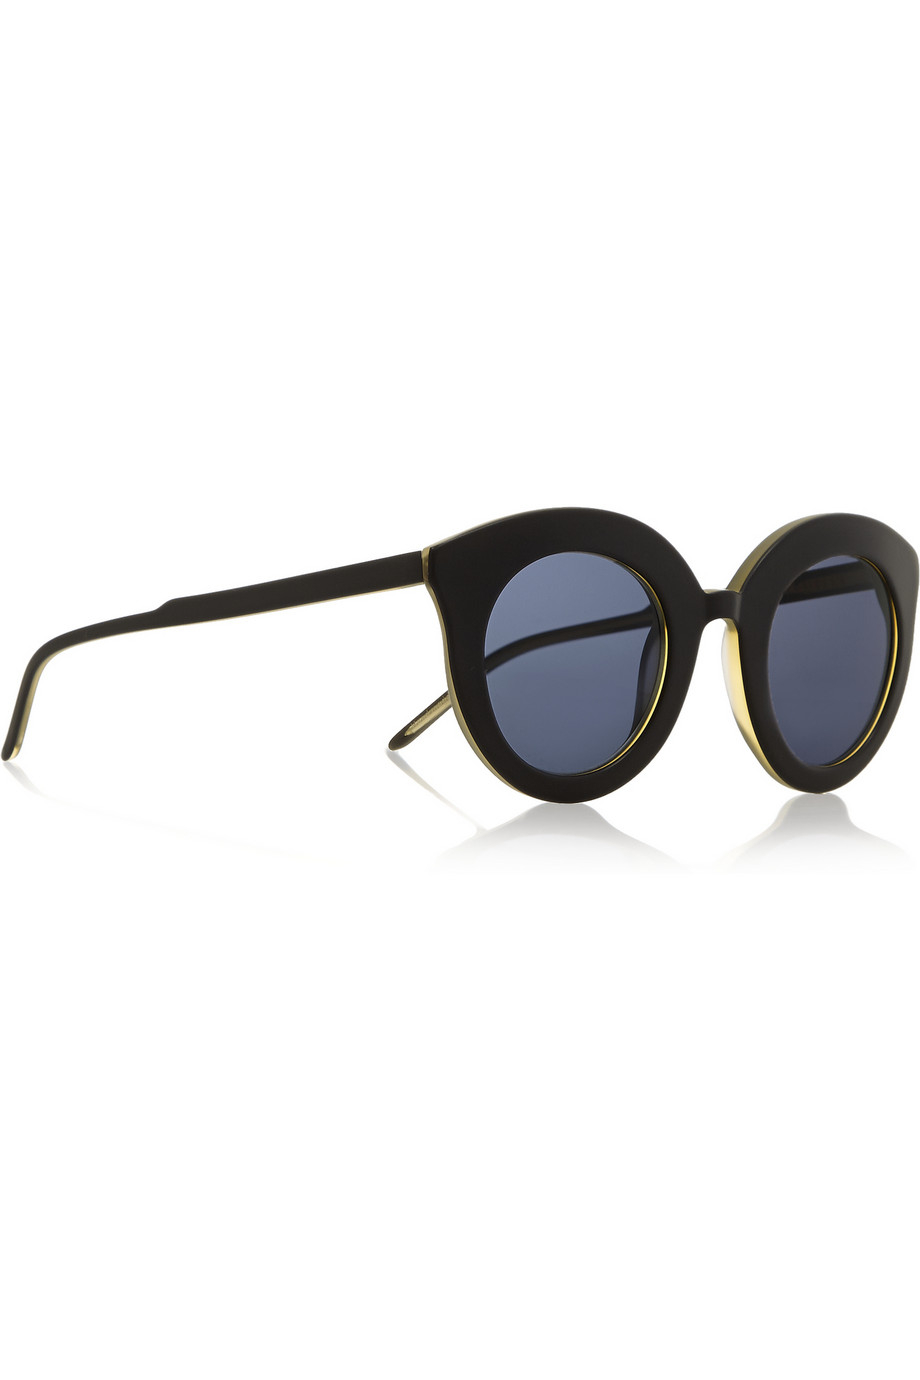 4edb0fb3a4 Lyst - Finds + Kaibosh Song Of The Siren Cat Eye Acetate Sunglasses ...